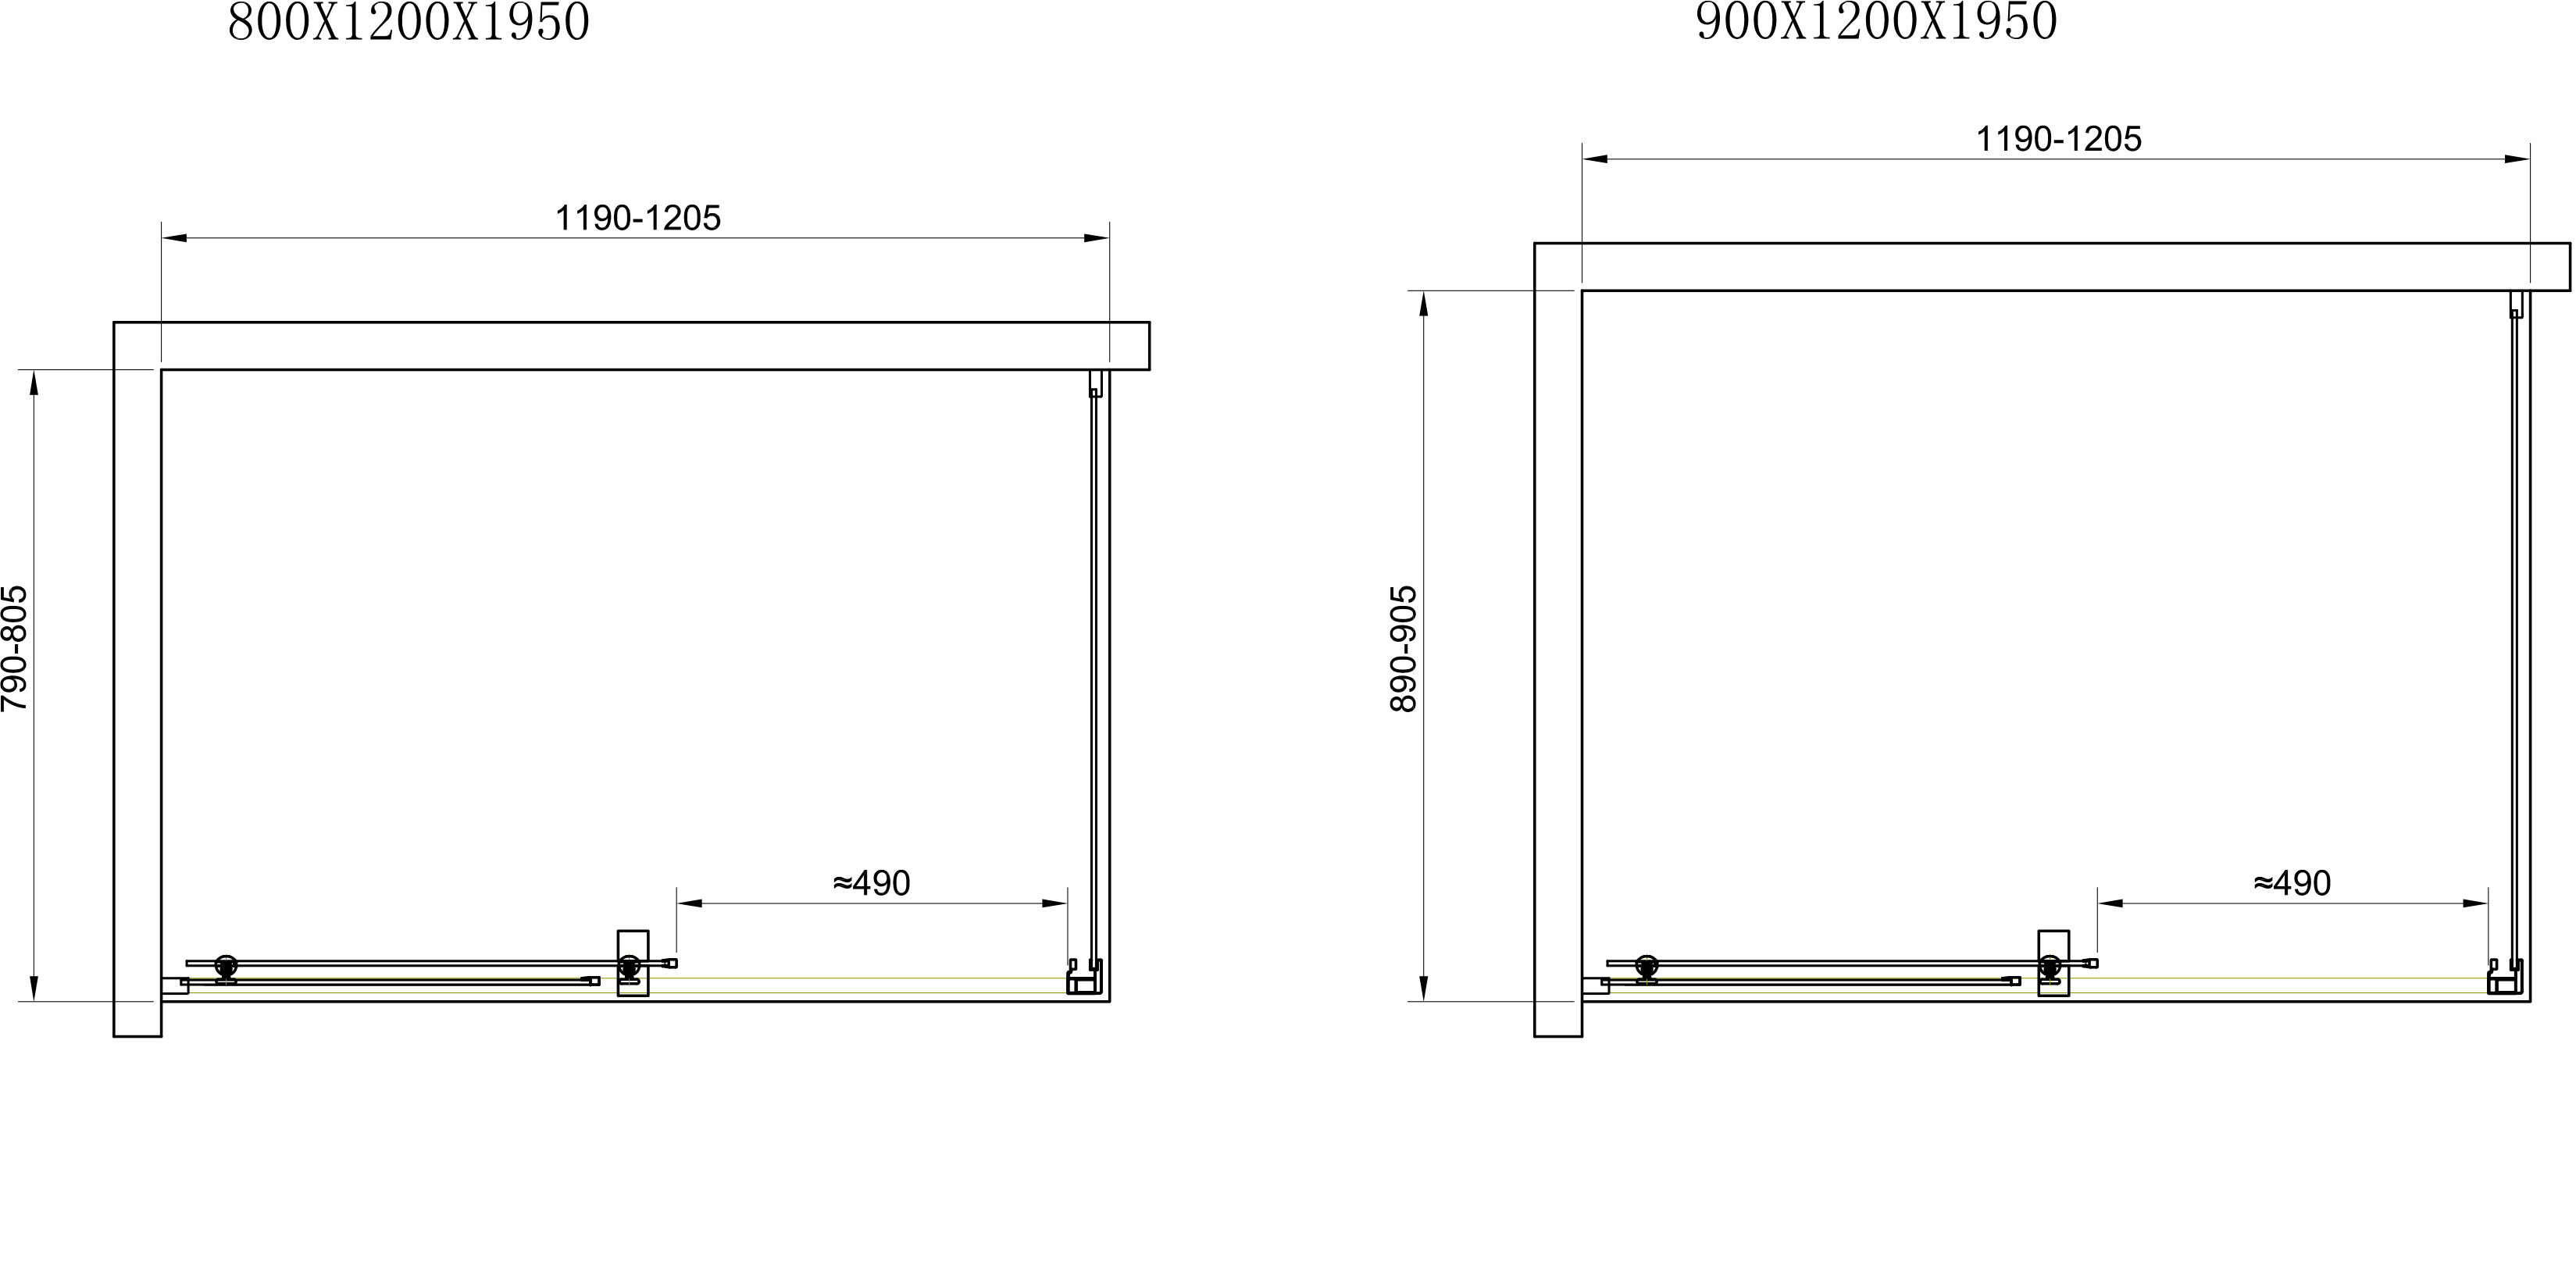 TECHNICAL DRAWING Cabine-douche-Malaga-schema